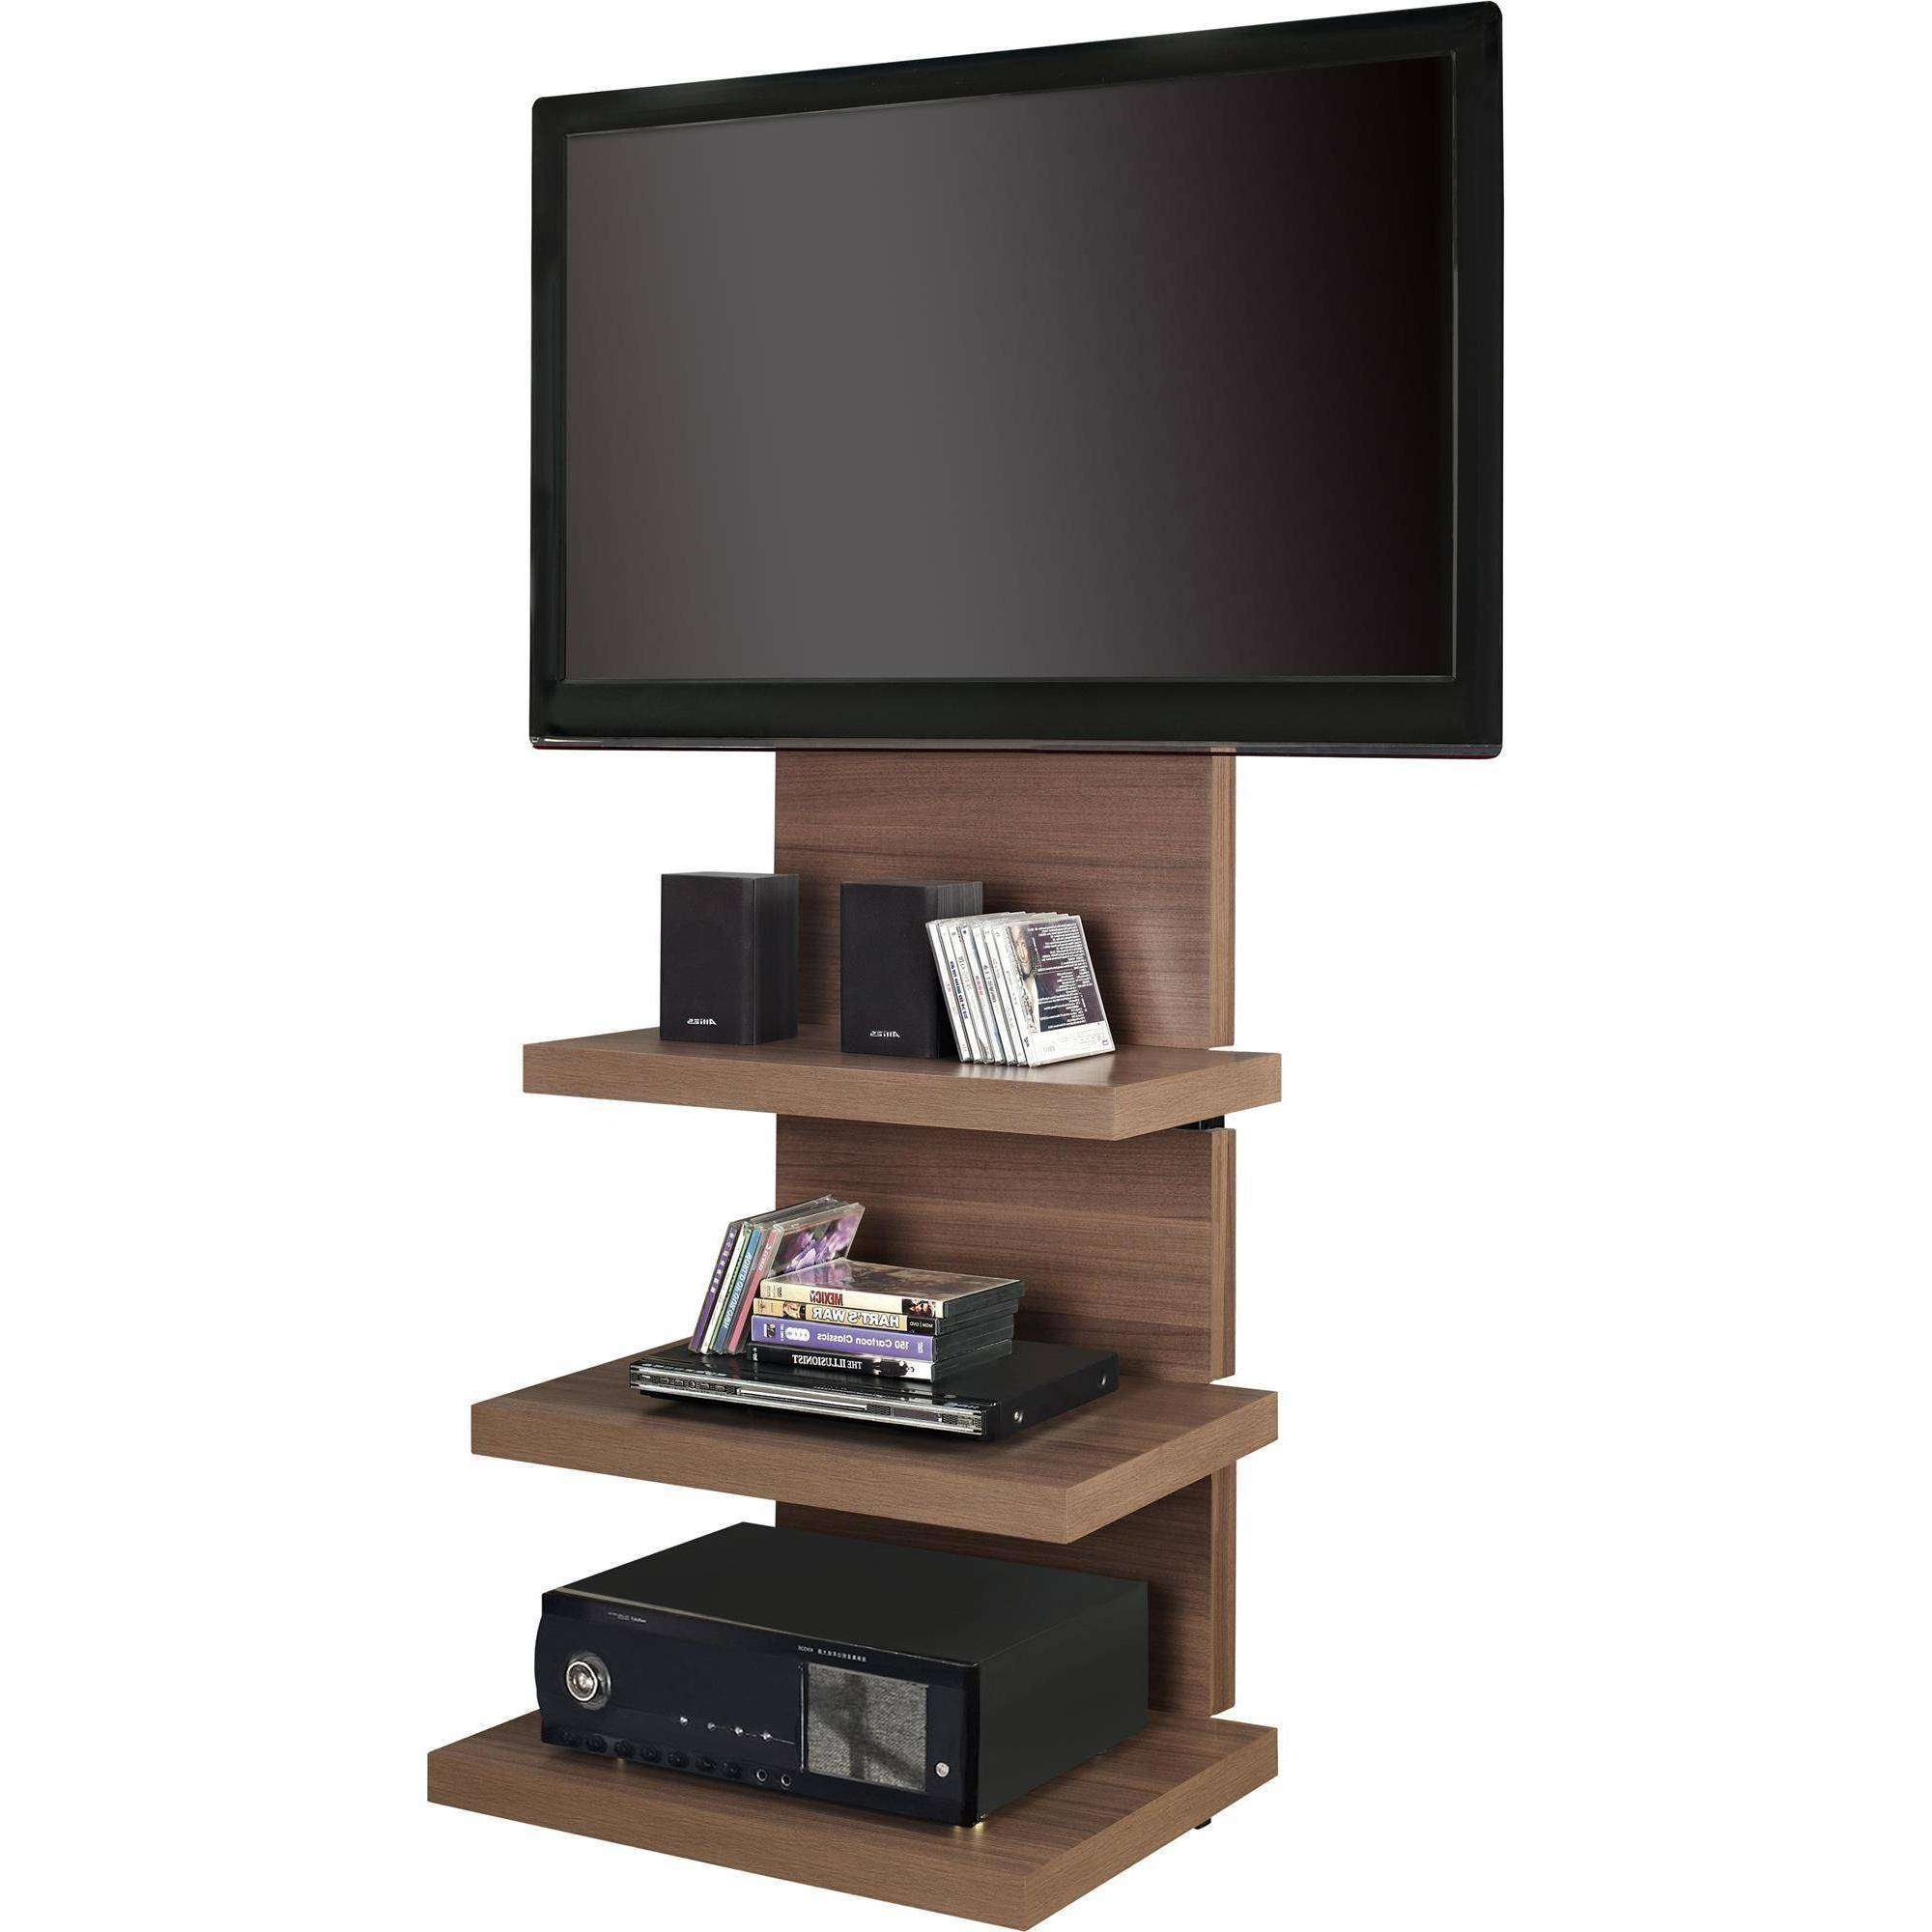 Table : Amazing Wall Mount Adjustable Tv Stands Ameriwood Home Within Wall Mount Adjustable Tv Stands (View 11 of 20)